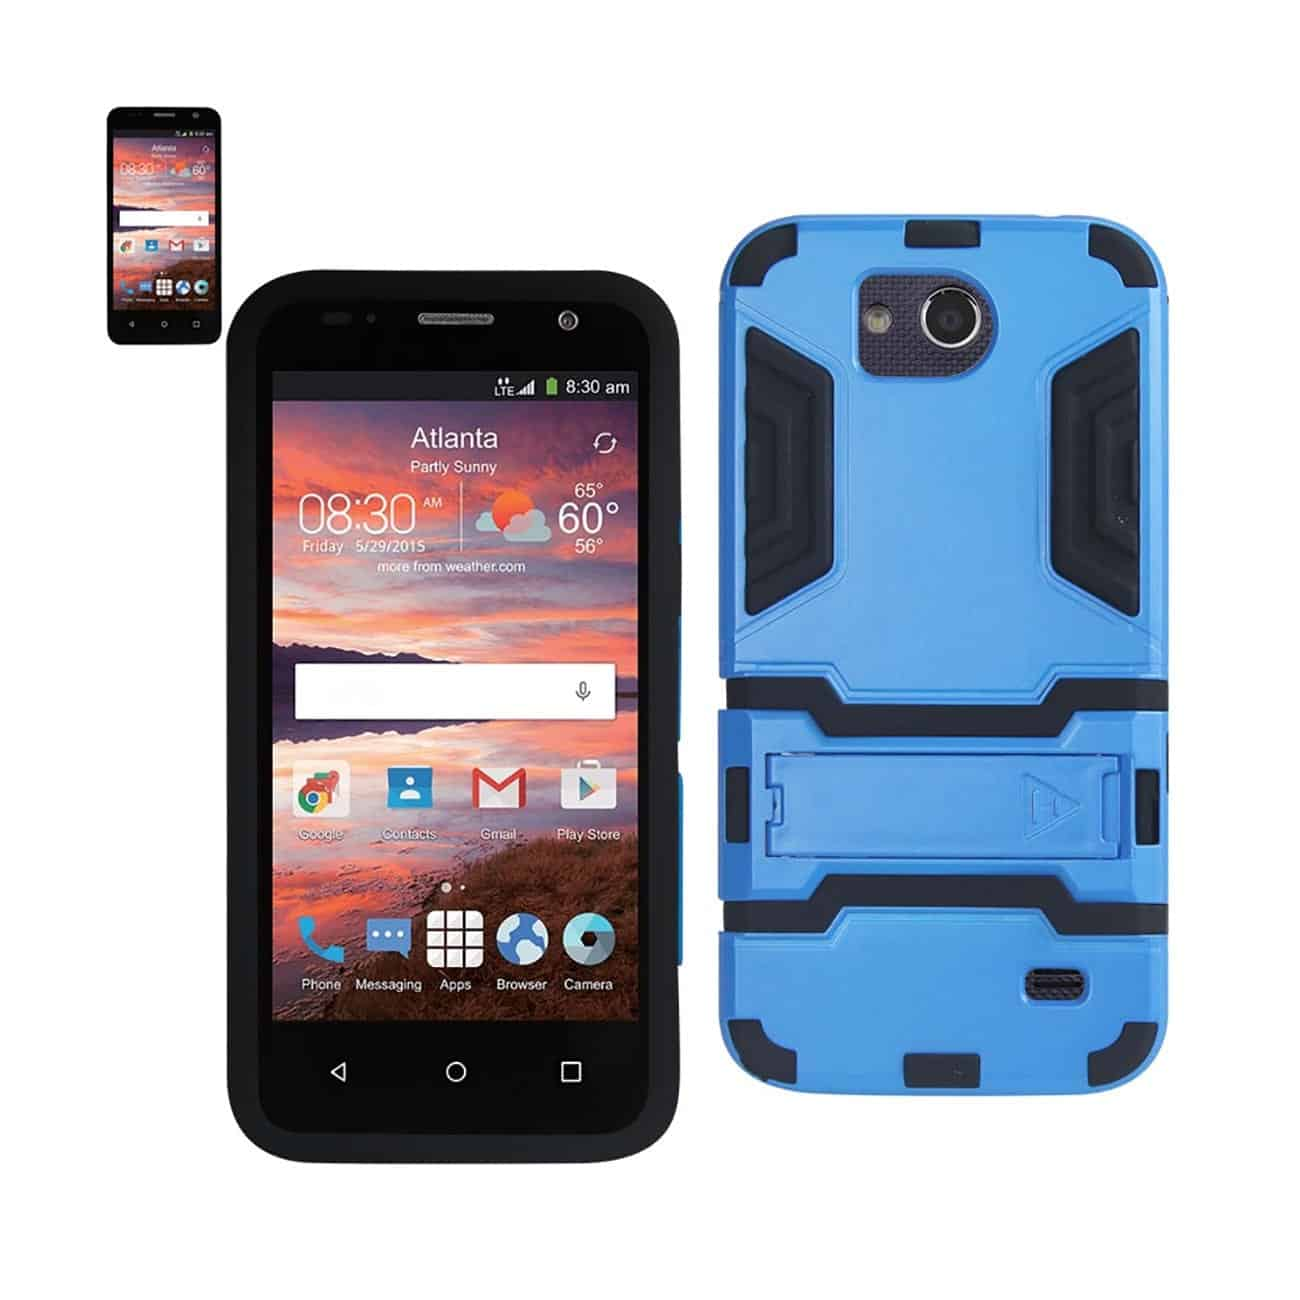 ZTE OVERTURE 2 HYBRID METALLIC CASE WITH KICKSTAND IN BLACK BLUE